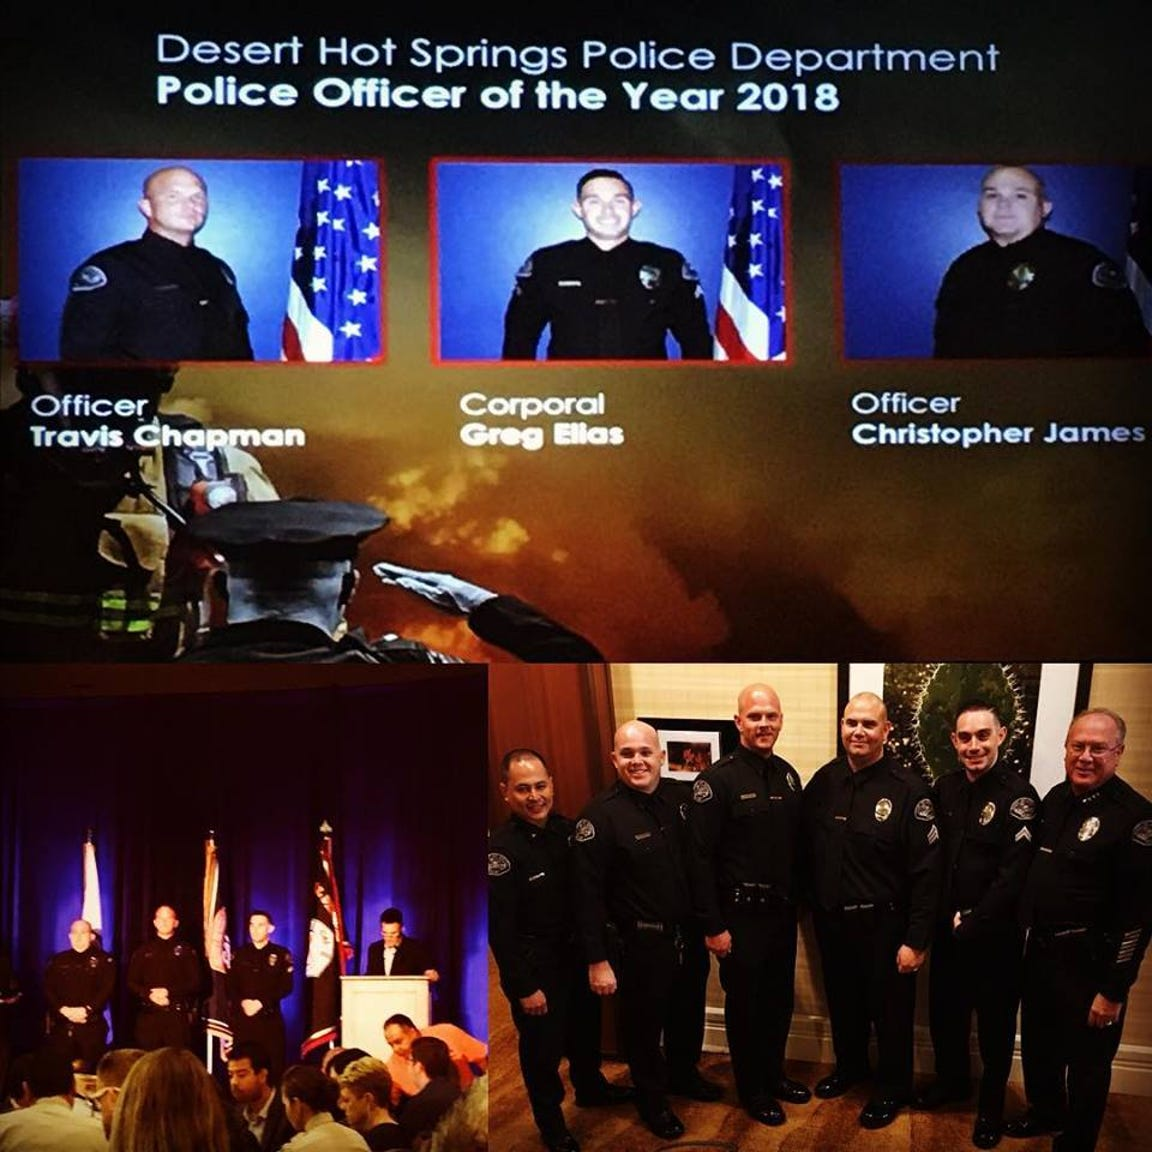 Travis Chapman was recognized on Oct. 4, 2018 with the 2018 Desert Hot Springs Police Officer's of the Year Award.